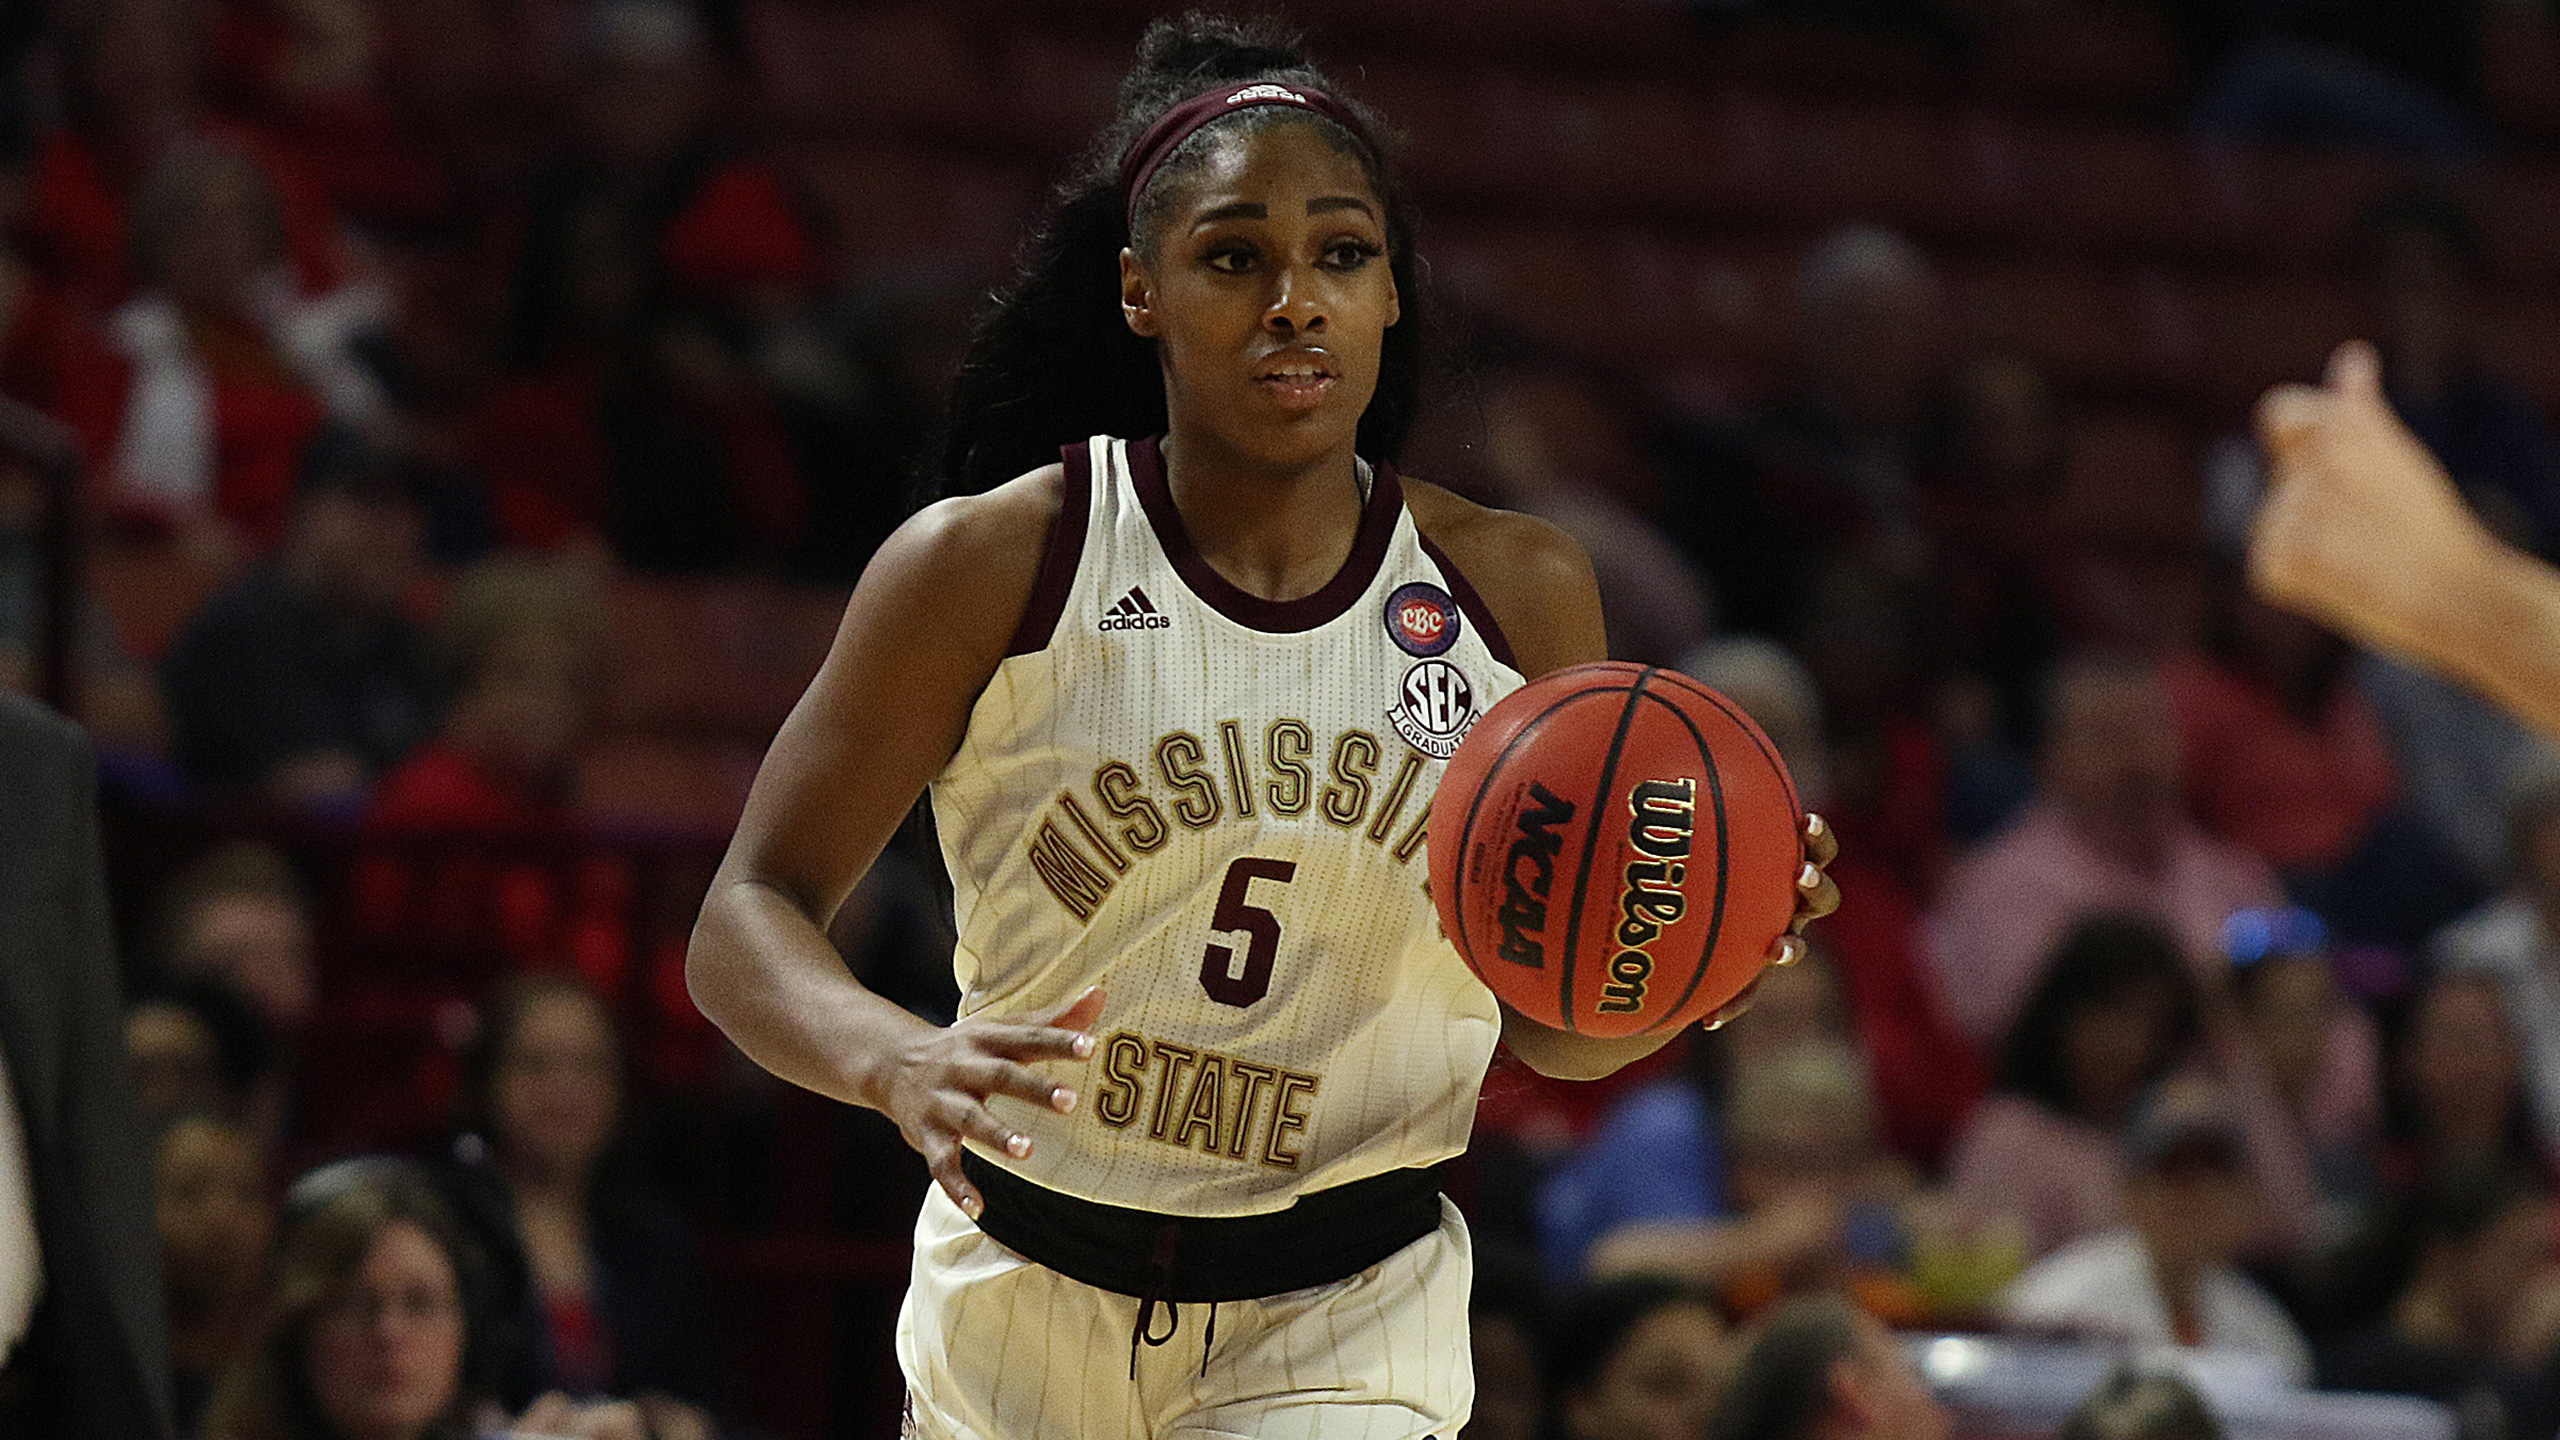 #16 Southern vs. #1 Mississippi State (First Round) (NCAA Women's Basketball Championship)